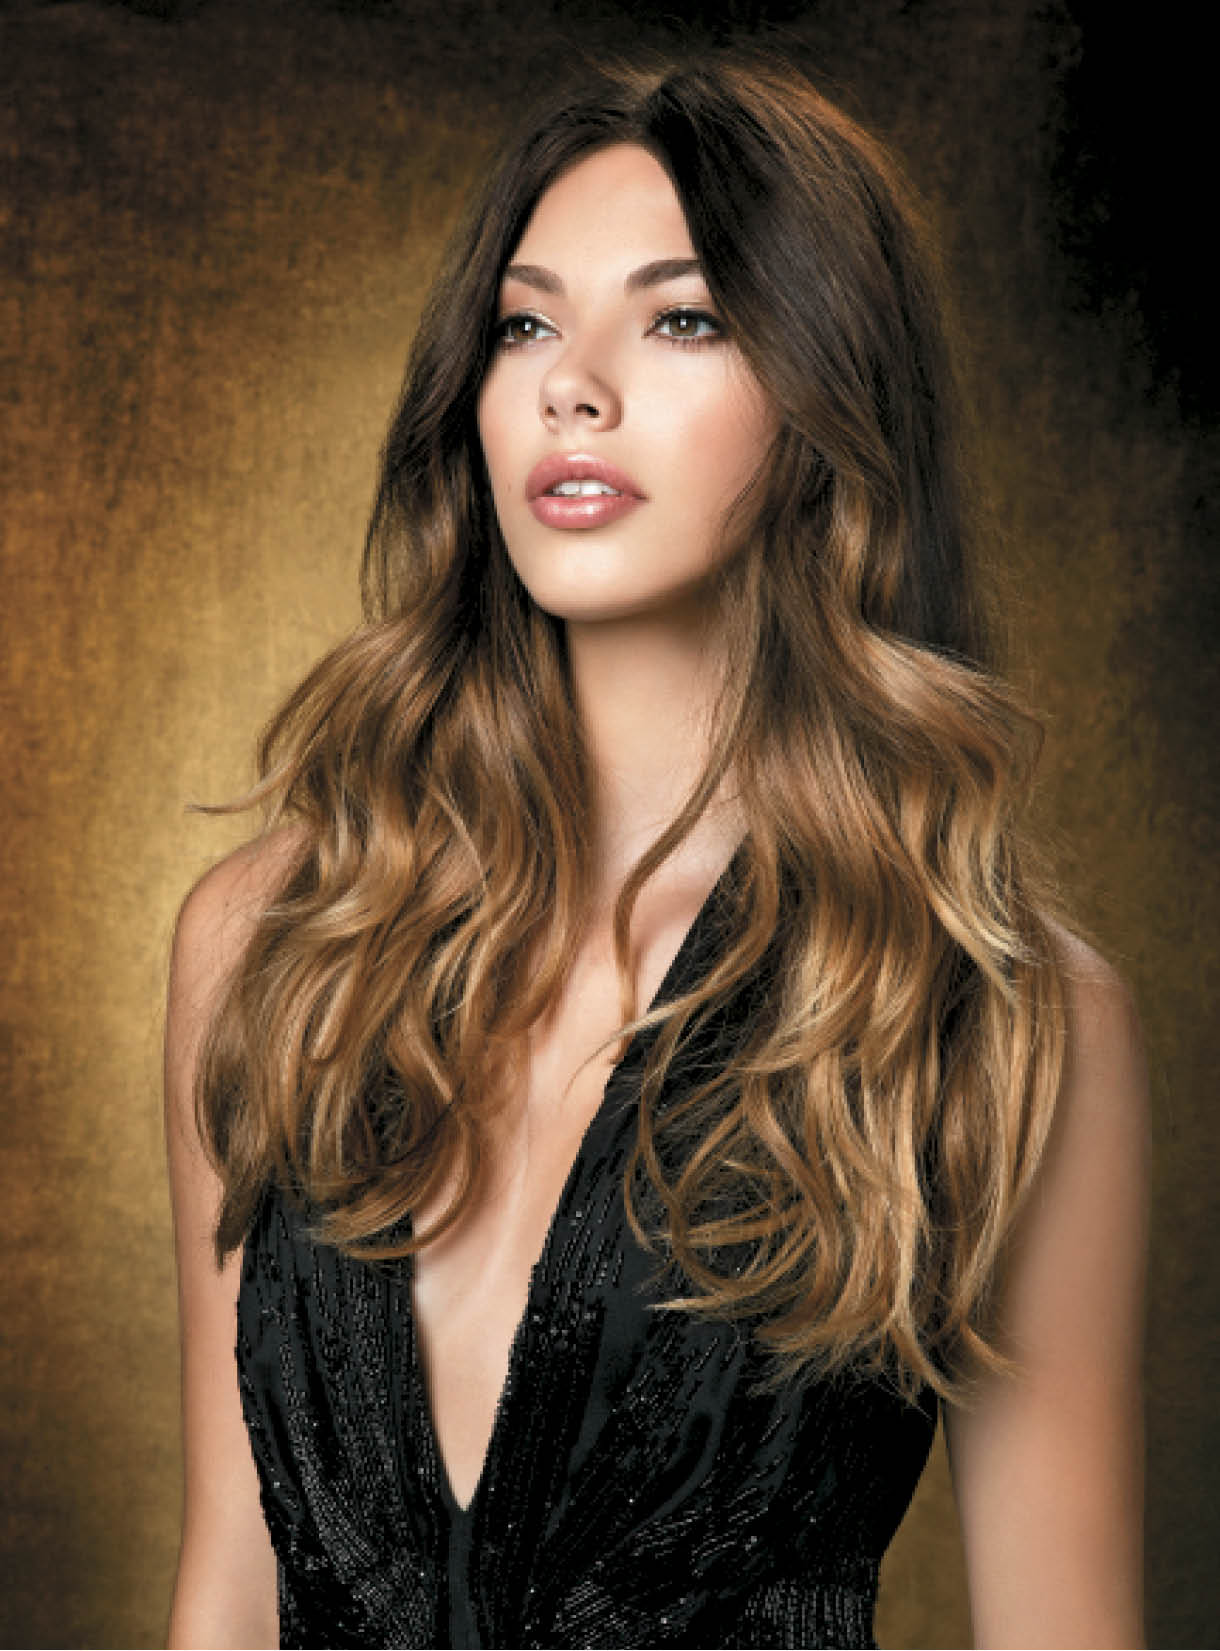 """Klara's look is one of the most popular looks I have done: Lily Aldridge's ombre,"" Cunningham says of the cover model. ""Klara began as a natural level 4 and we used two different highlight formulas to maximize her ombre effect and lighten her ends."